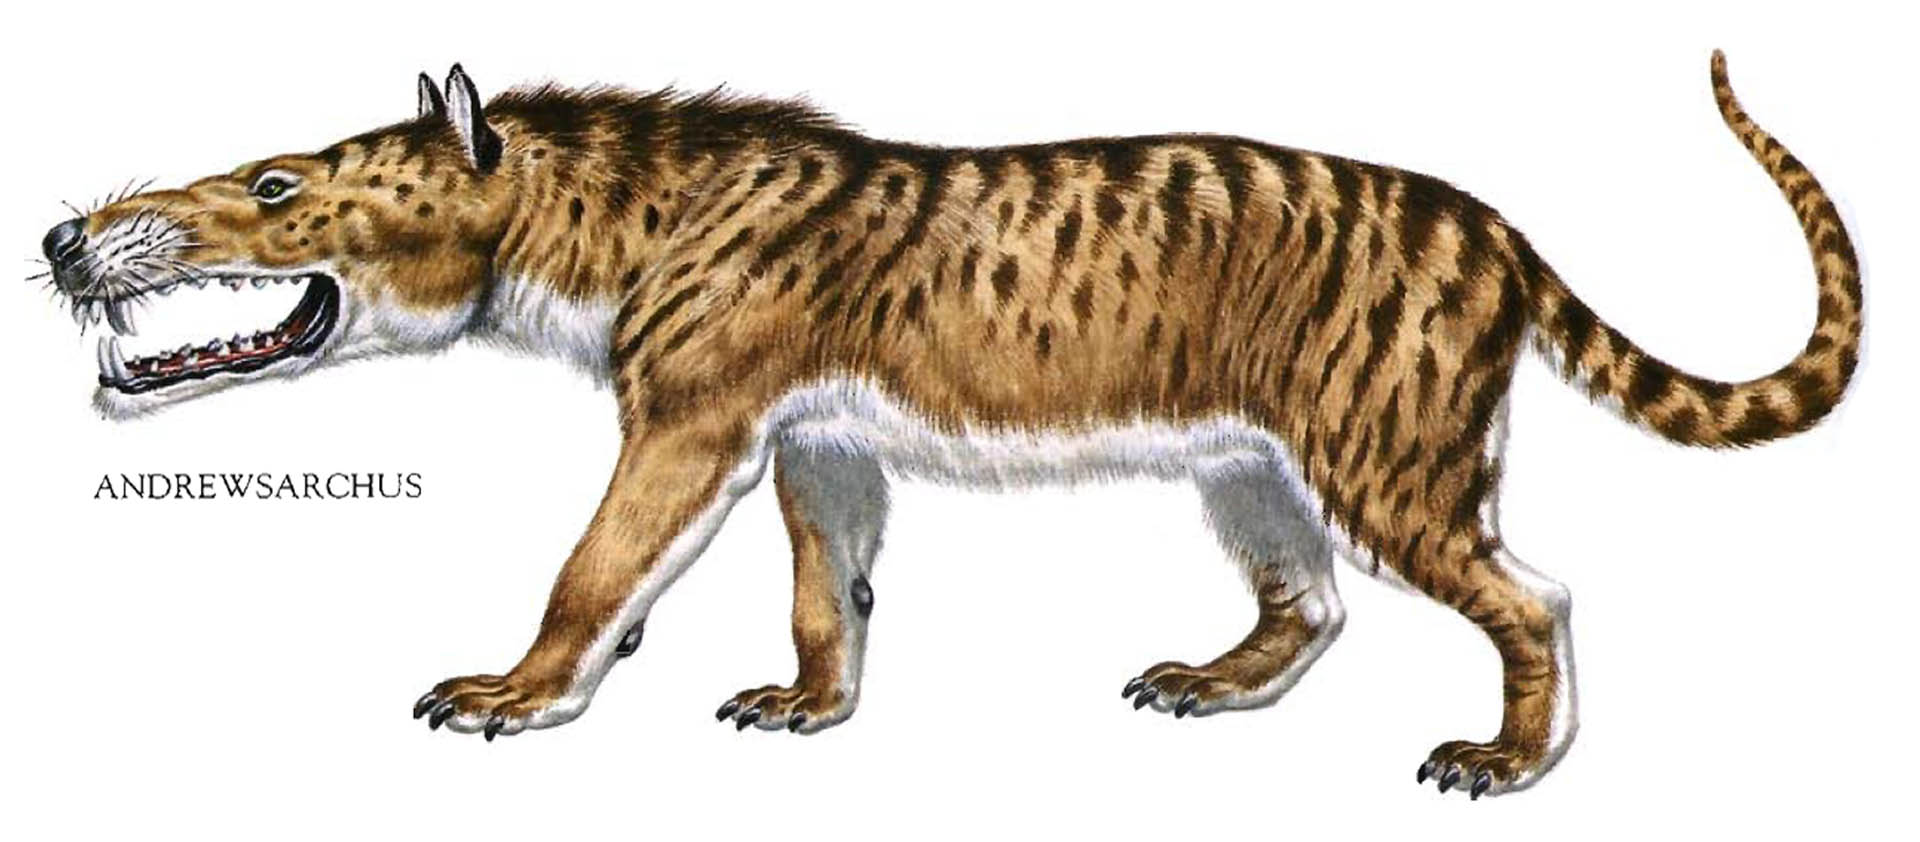 Andrewsarchus Huge Mouthed Hyena